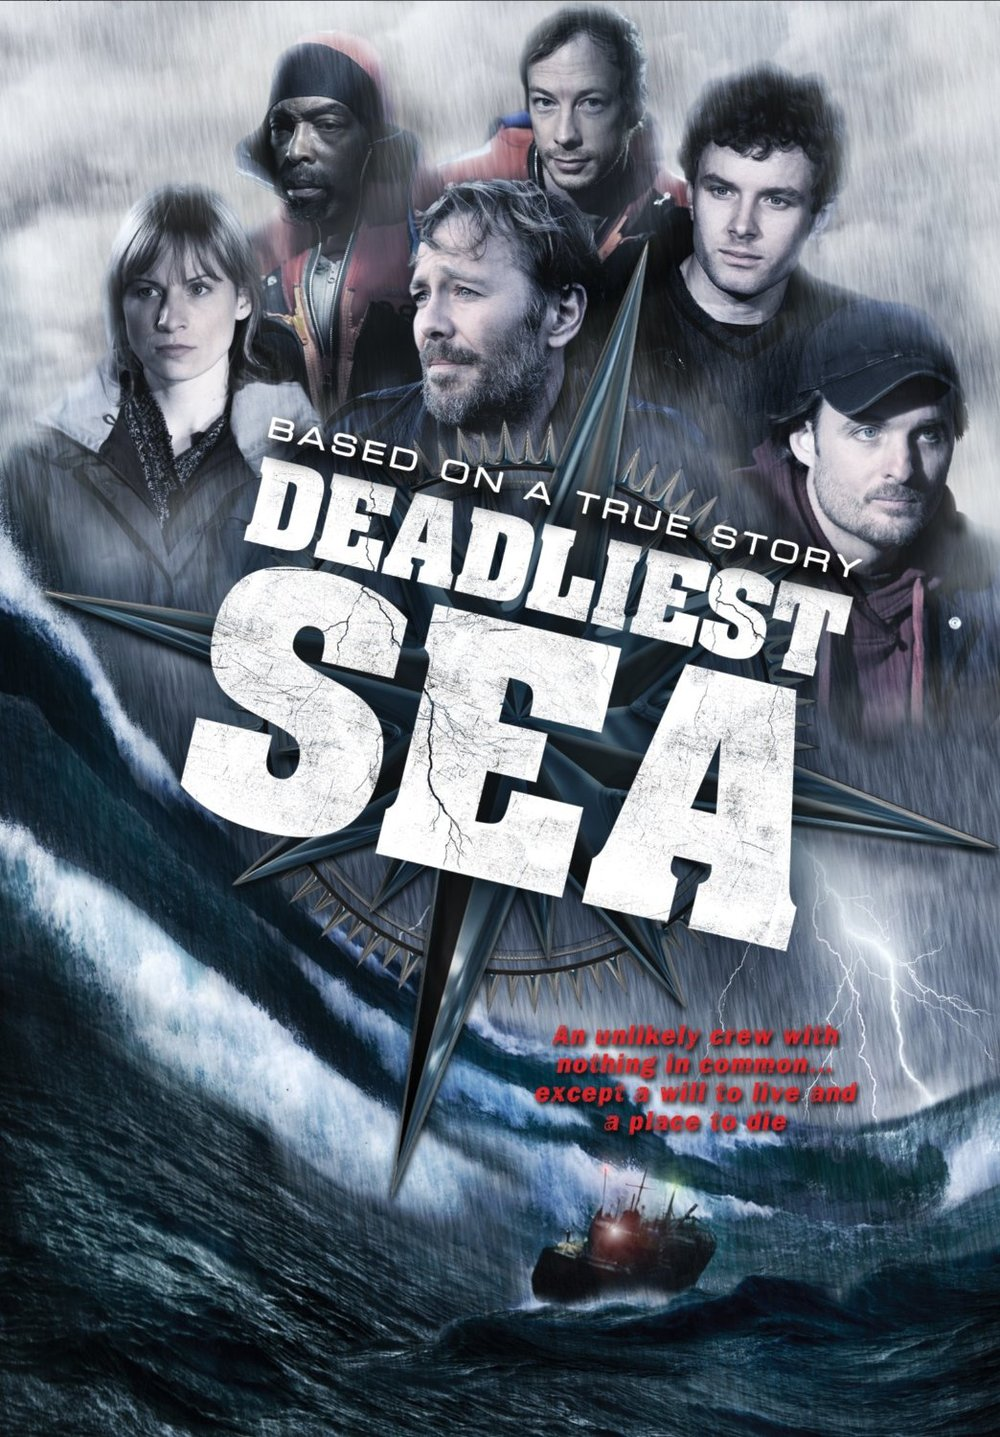 Deadliest Sea Poster.jpeg